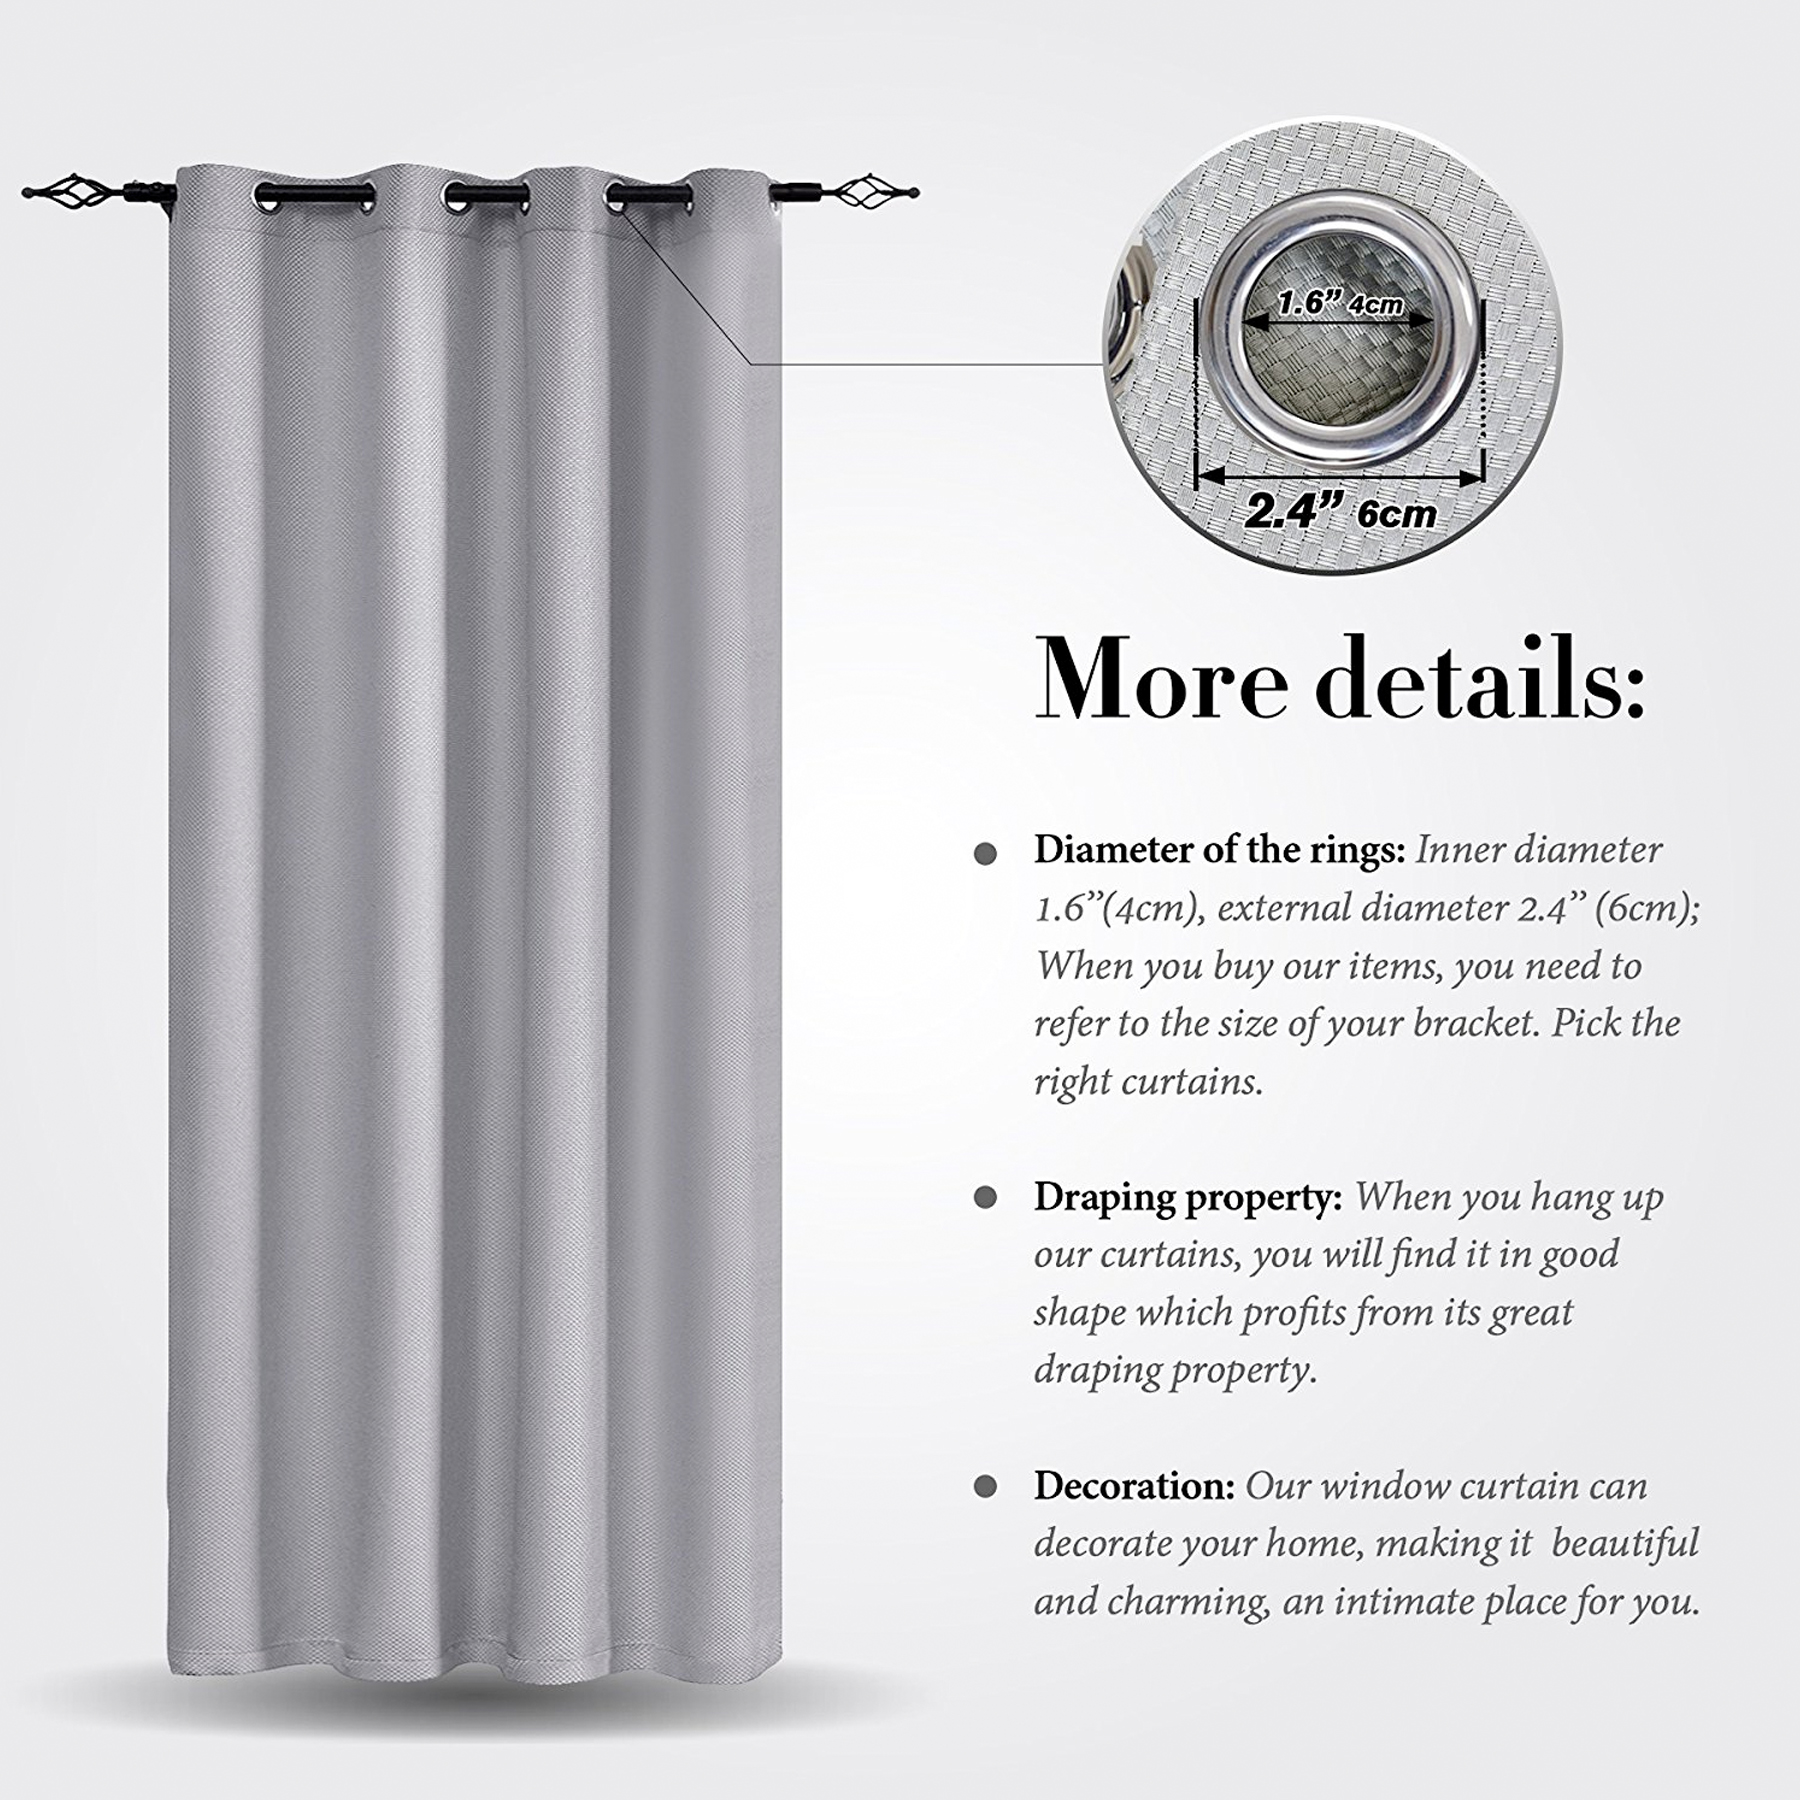 2 Panel Weave Thermal Insulated Blackout Curtain For Bedroom - How-to-select-the-right-window-curtains-for-our-home